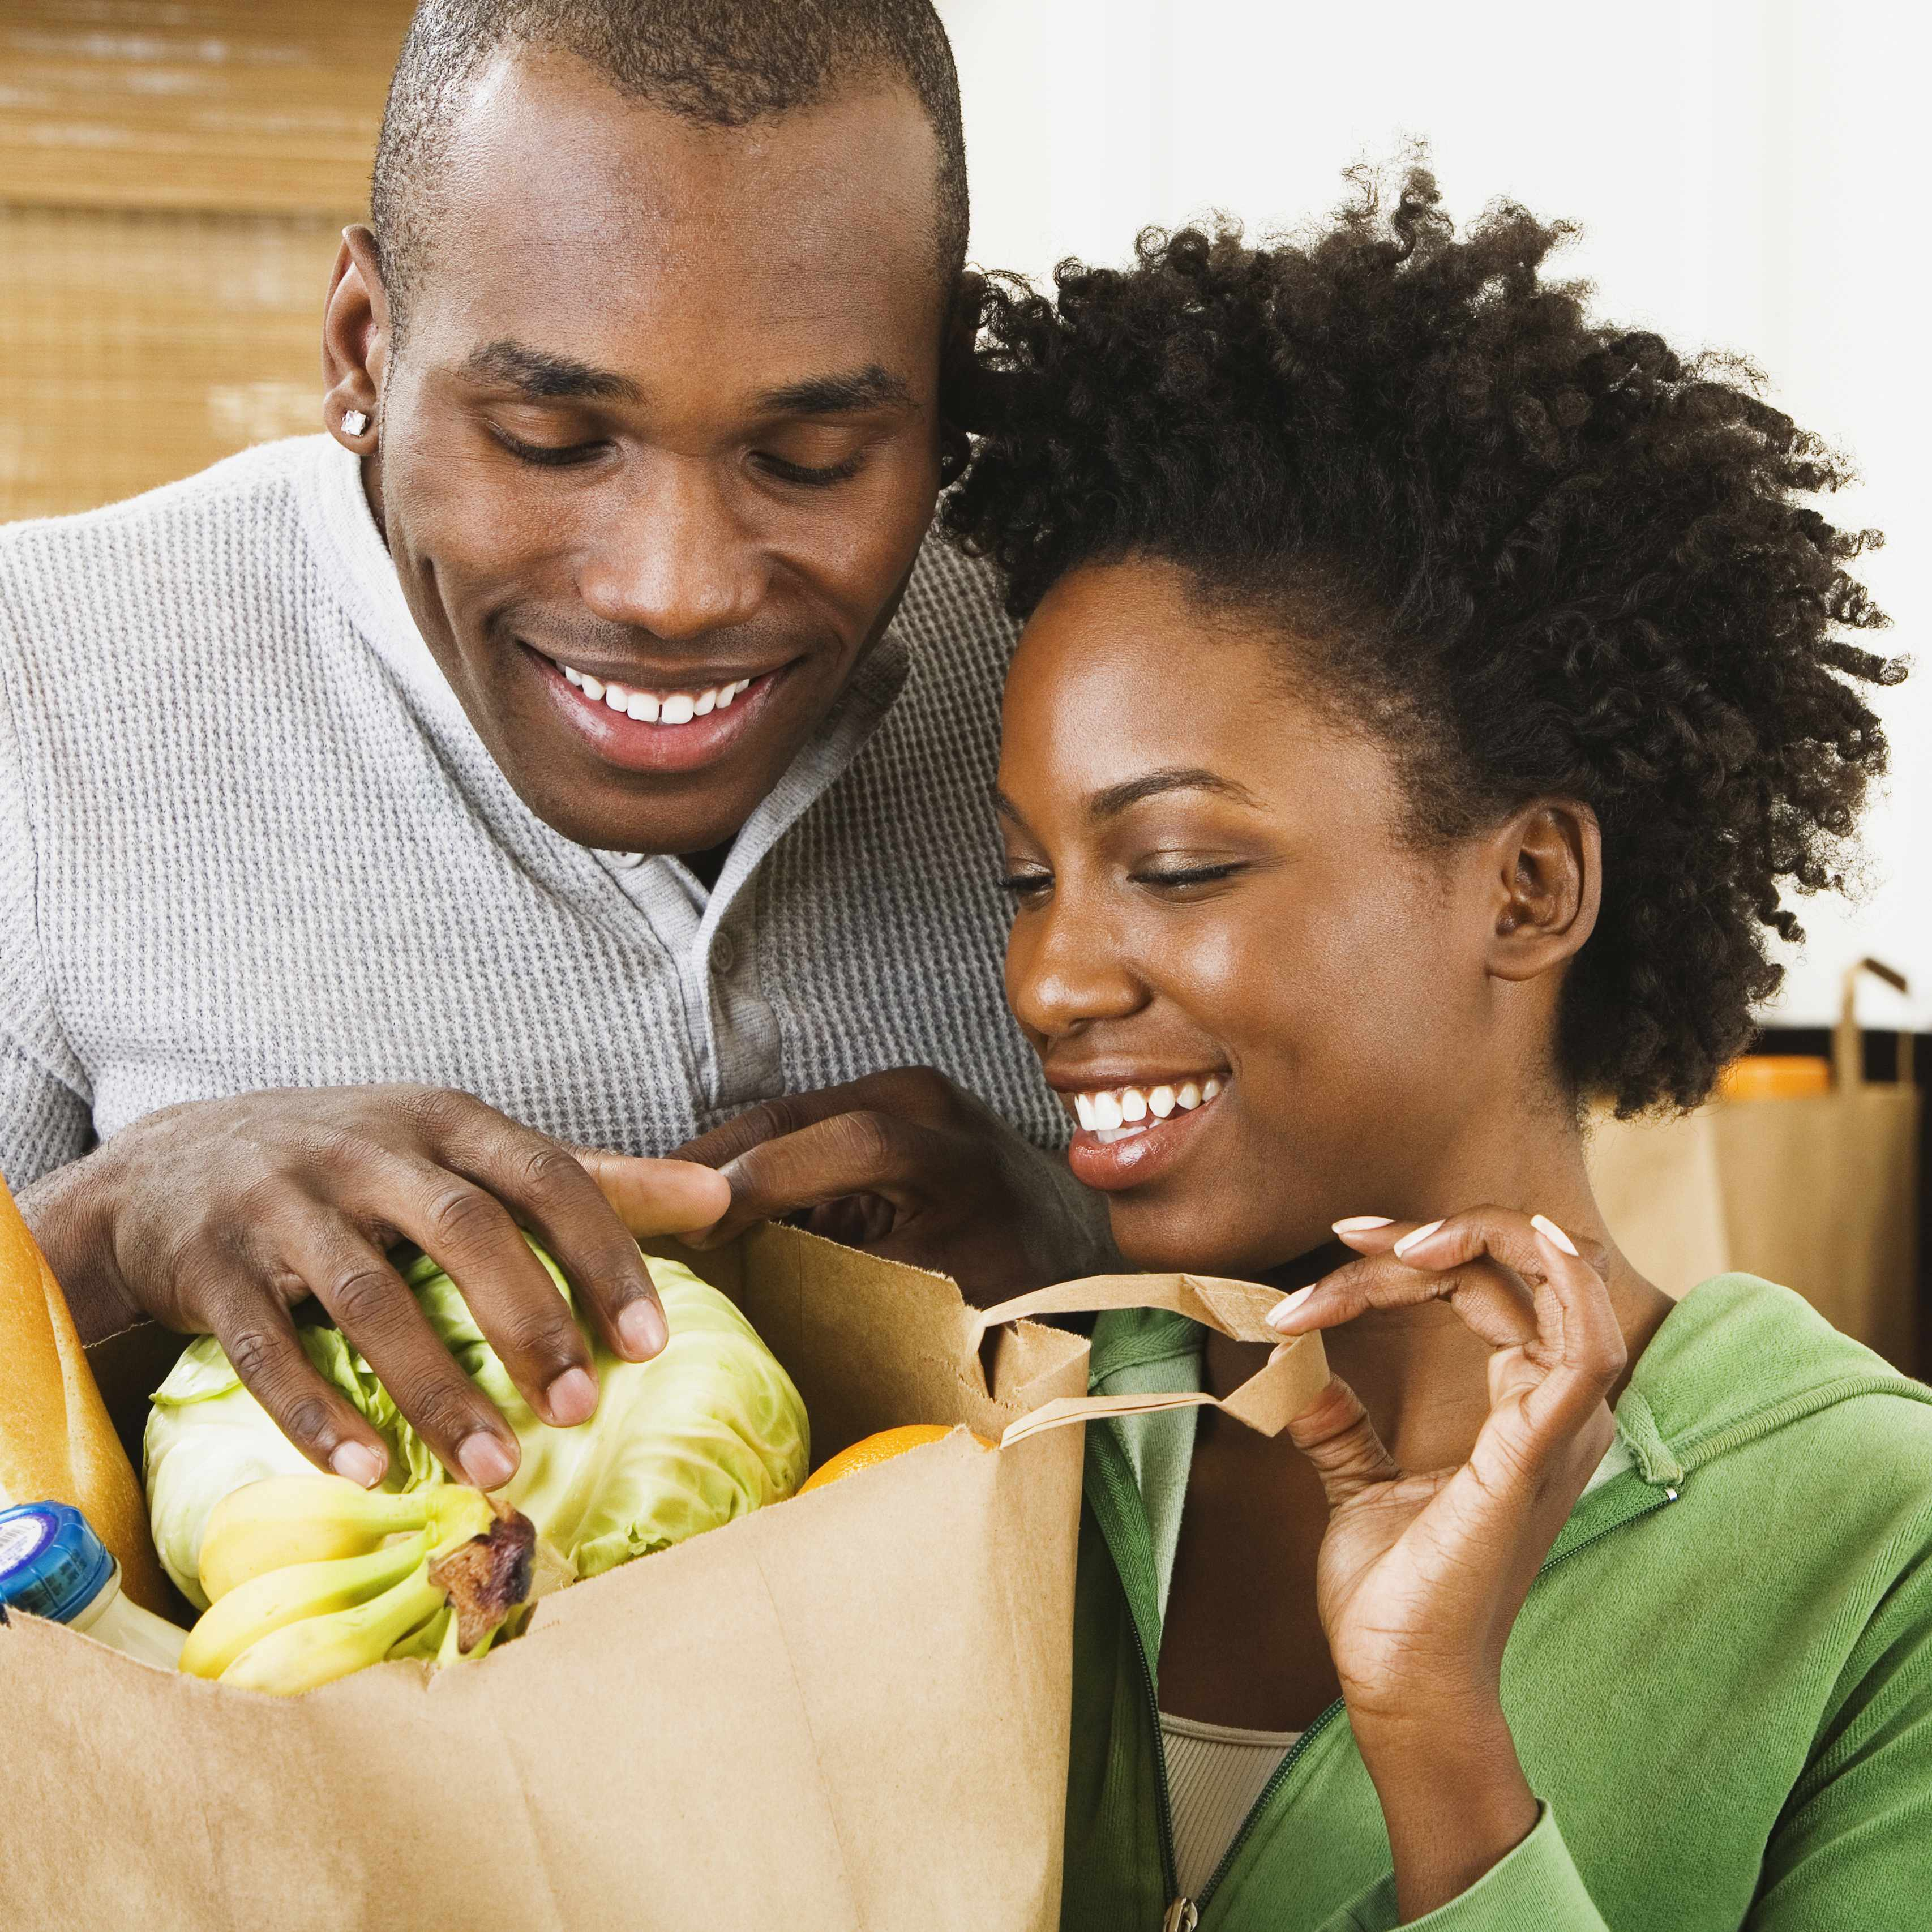 a smiling young couple in their kitchen, looking into a bag of groceries